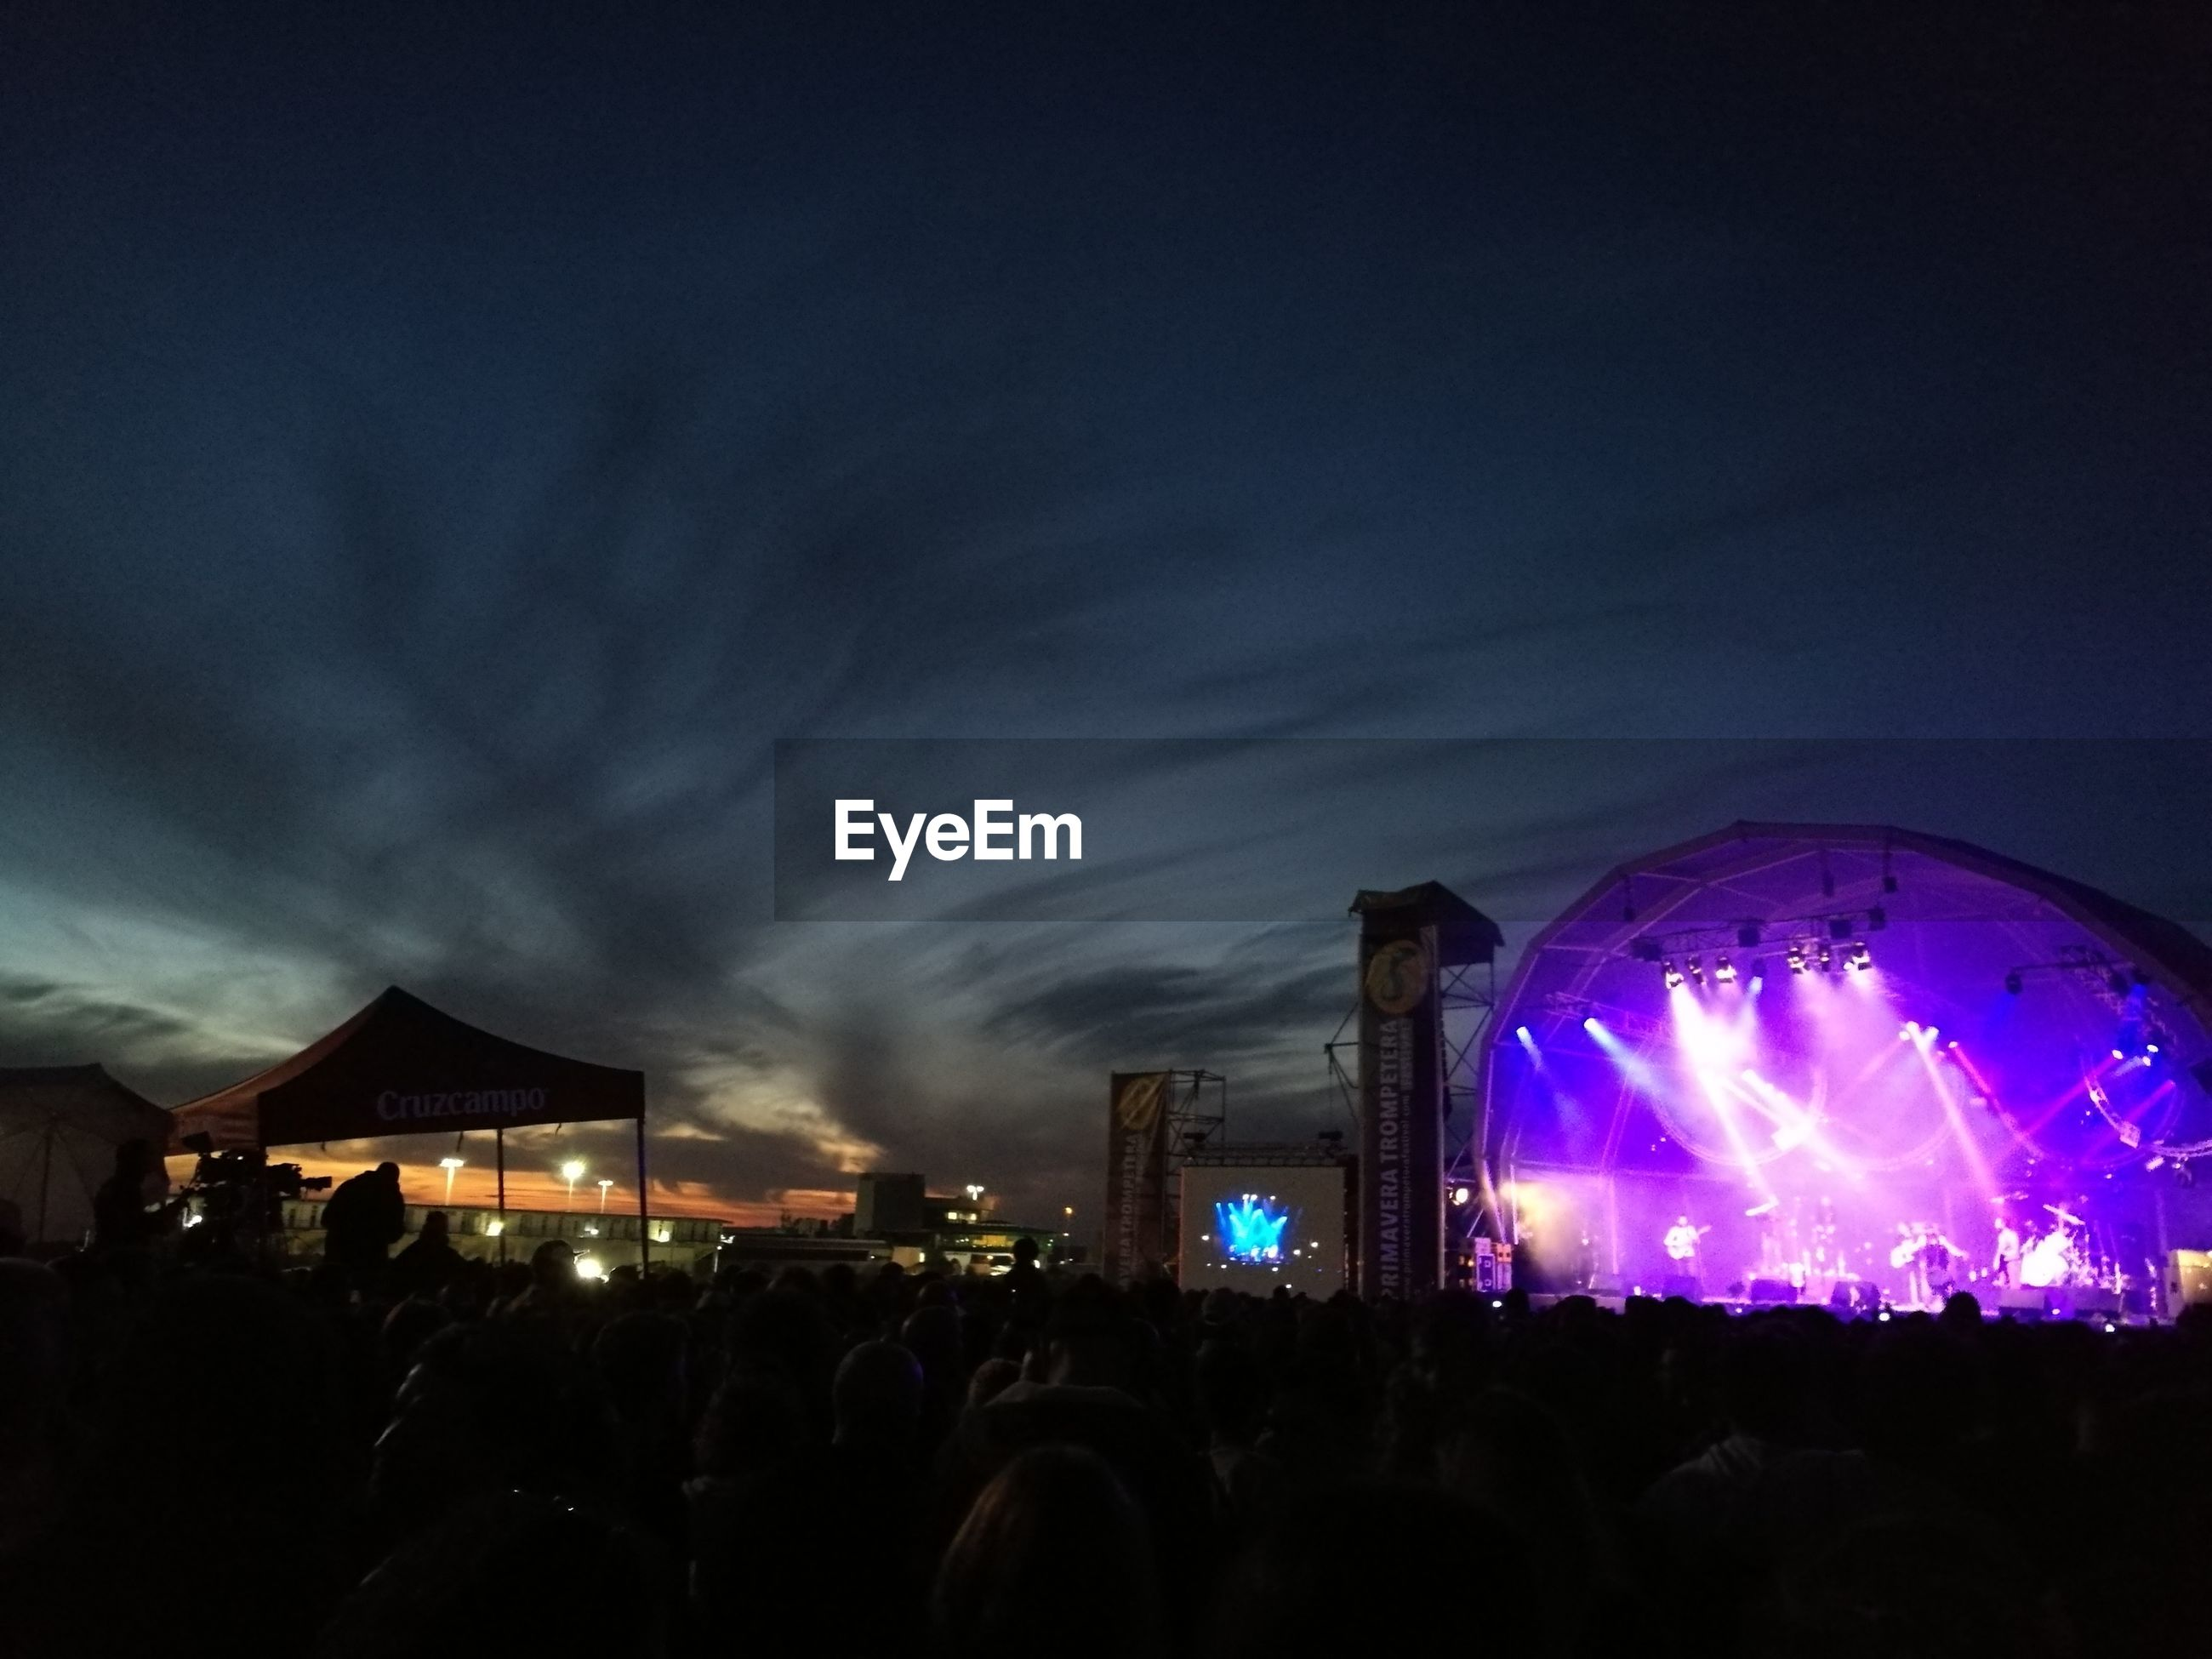 night, illuminated, sky, city, popular music concert, event, architecture, nightlife, outdoors, people, crowd, star - space